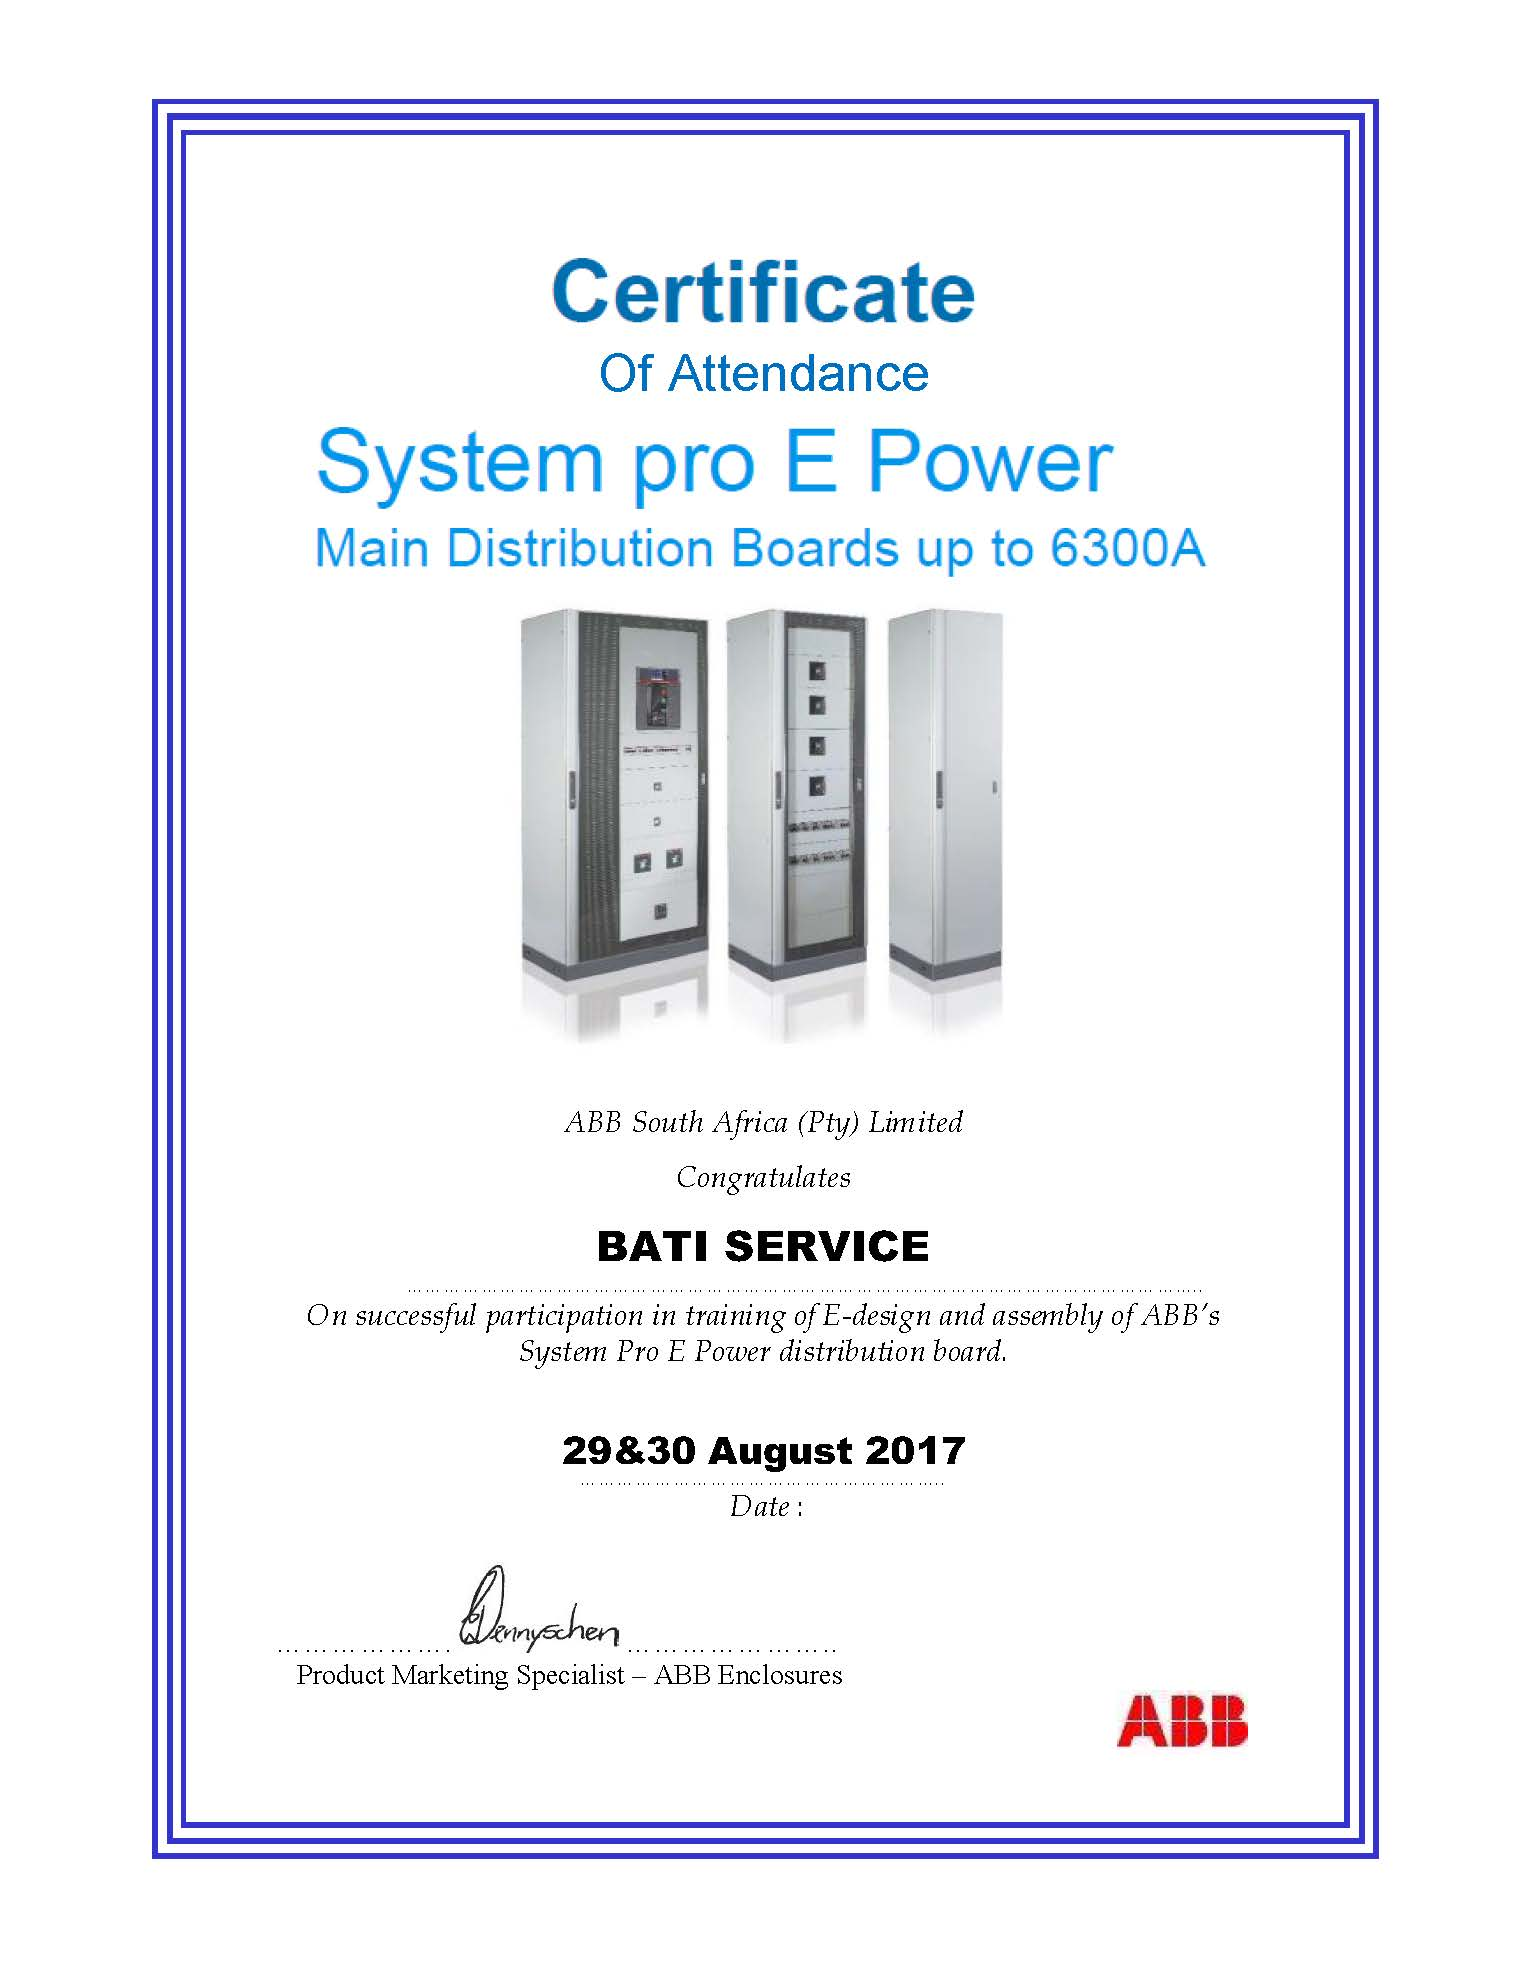 Certification of Attendance System pro E Power